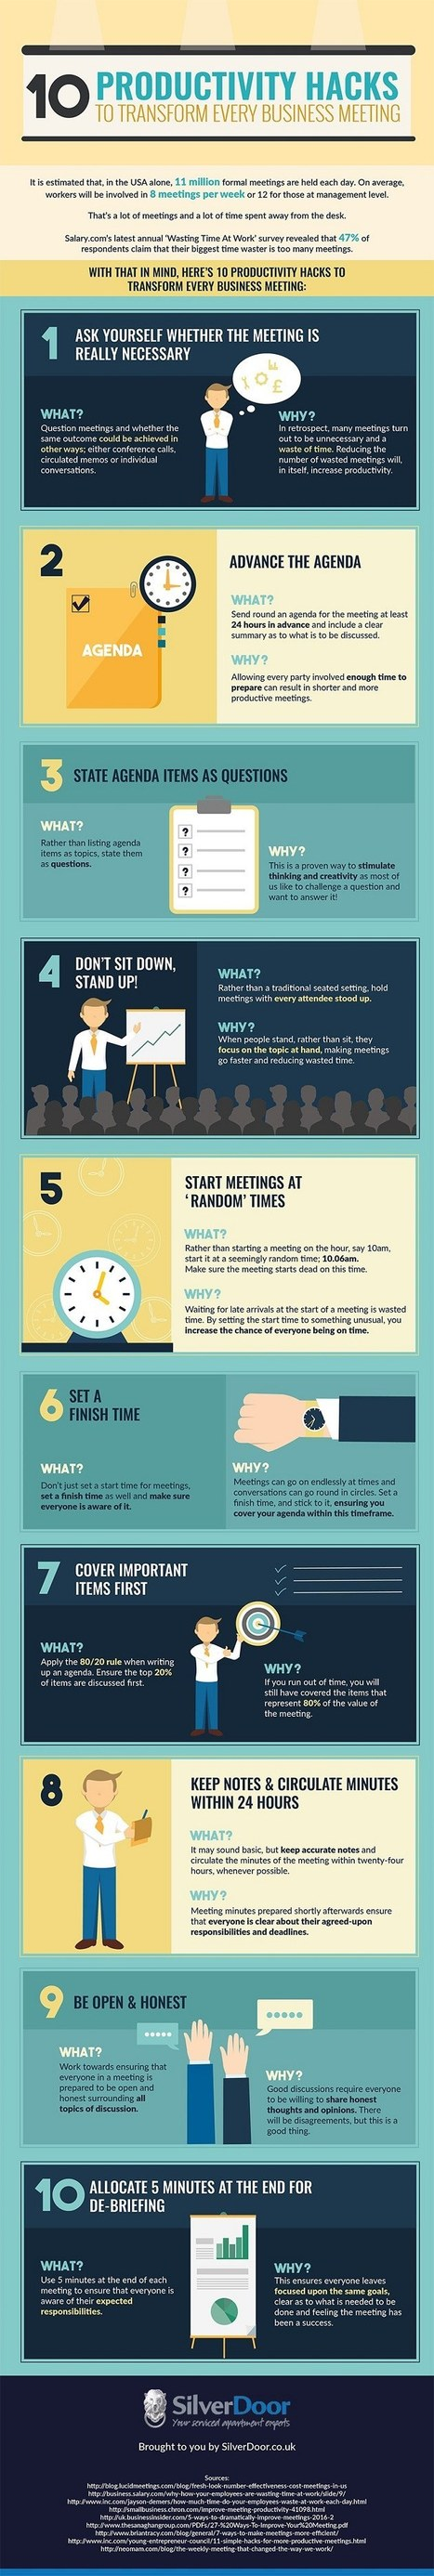 10 Ways to Make Your Marketing Meetings More Productive [Infographic] | Integrated Brand Communications | Scoop.it